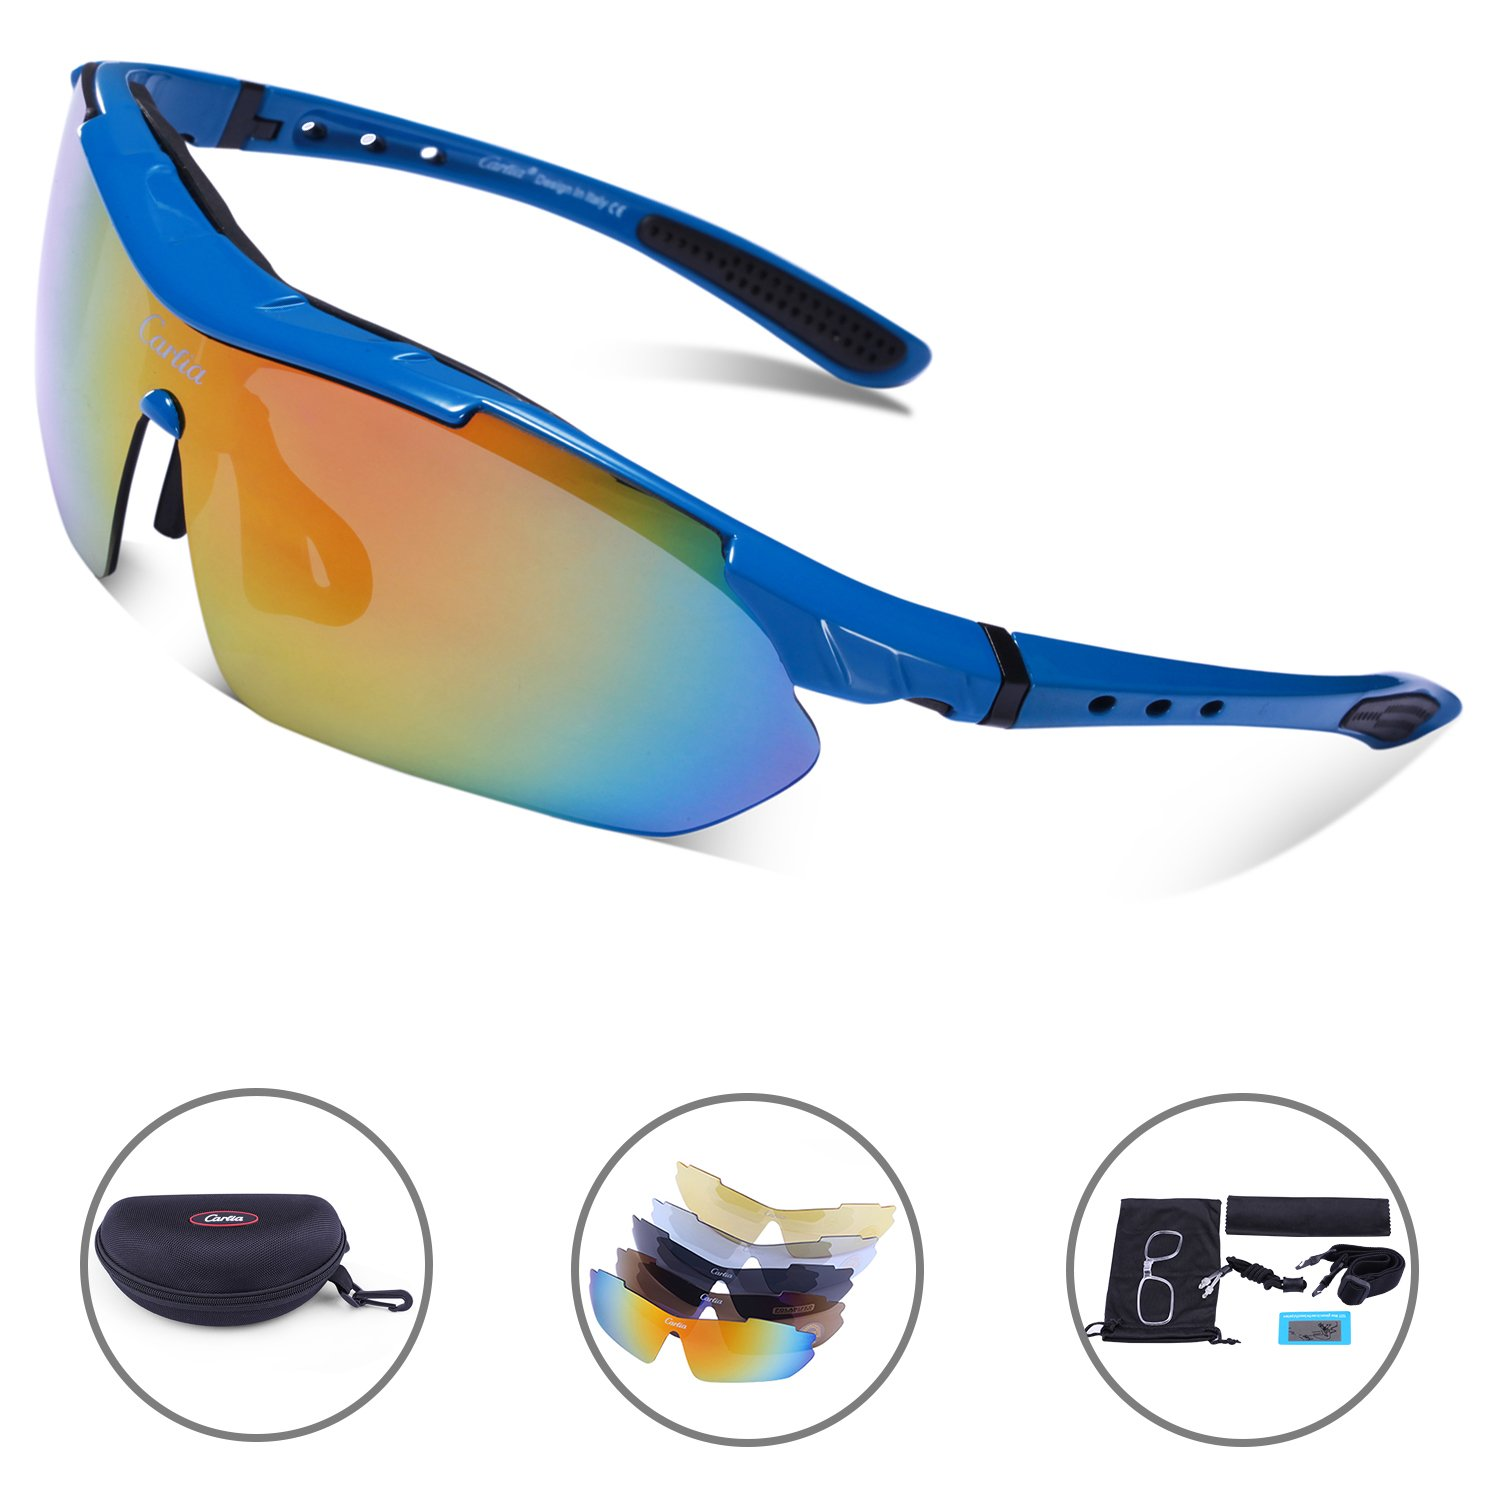 Carfia Polarized Sport Sunglasses UV400 Cycling Glasses for Men Women Lightweight Cool Frame with 5 Lens (Blue, Multicoloured) by Carfia